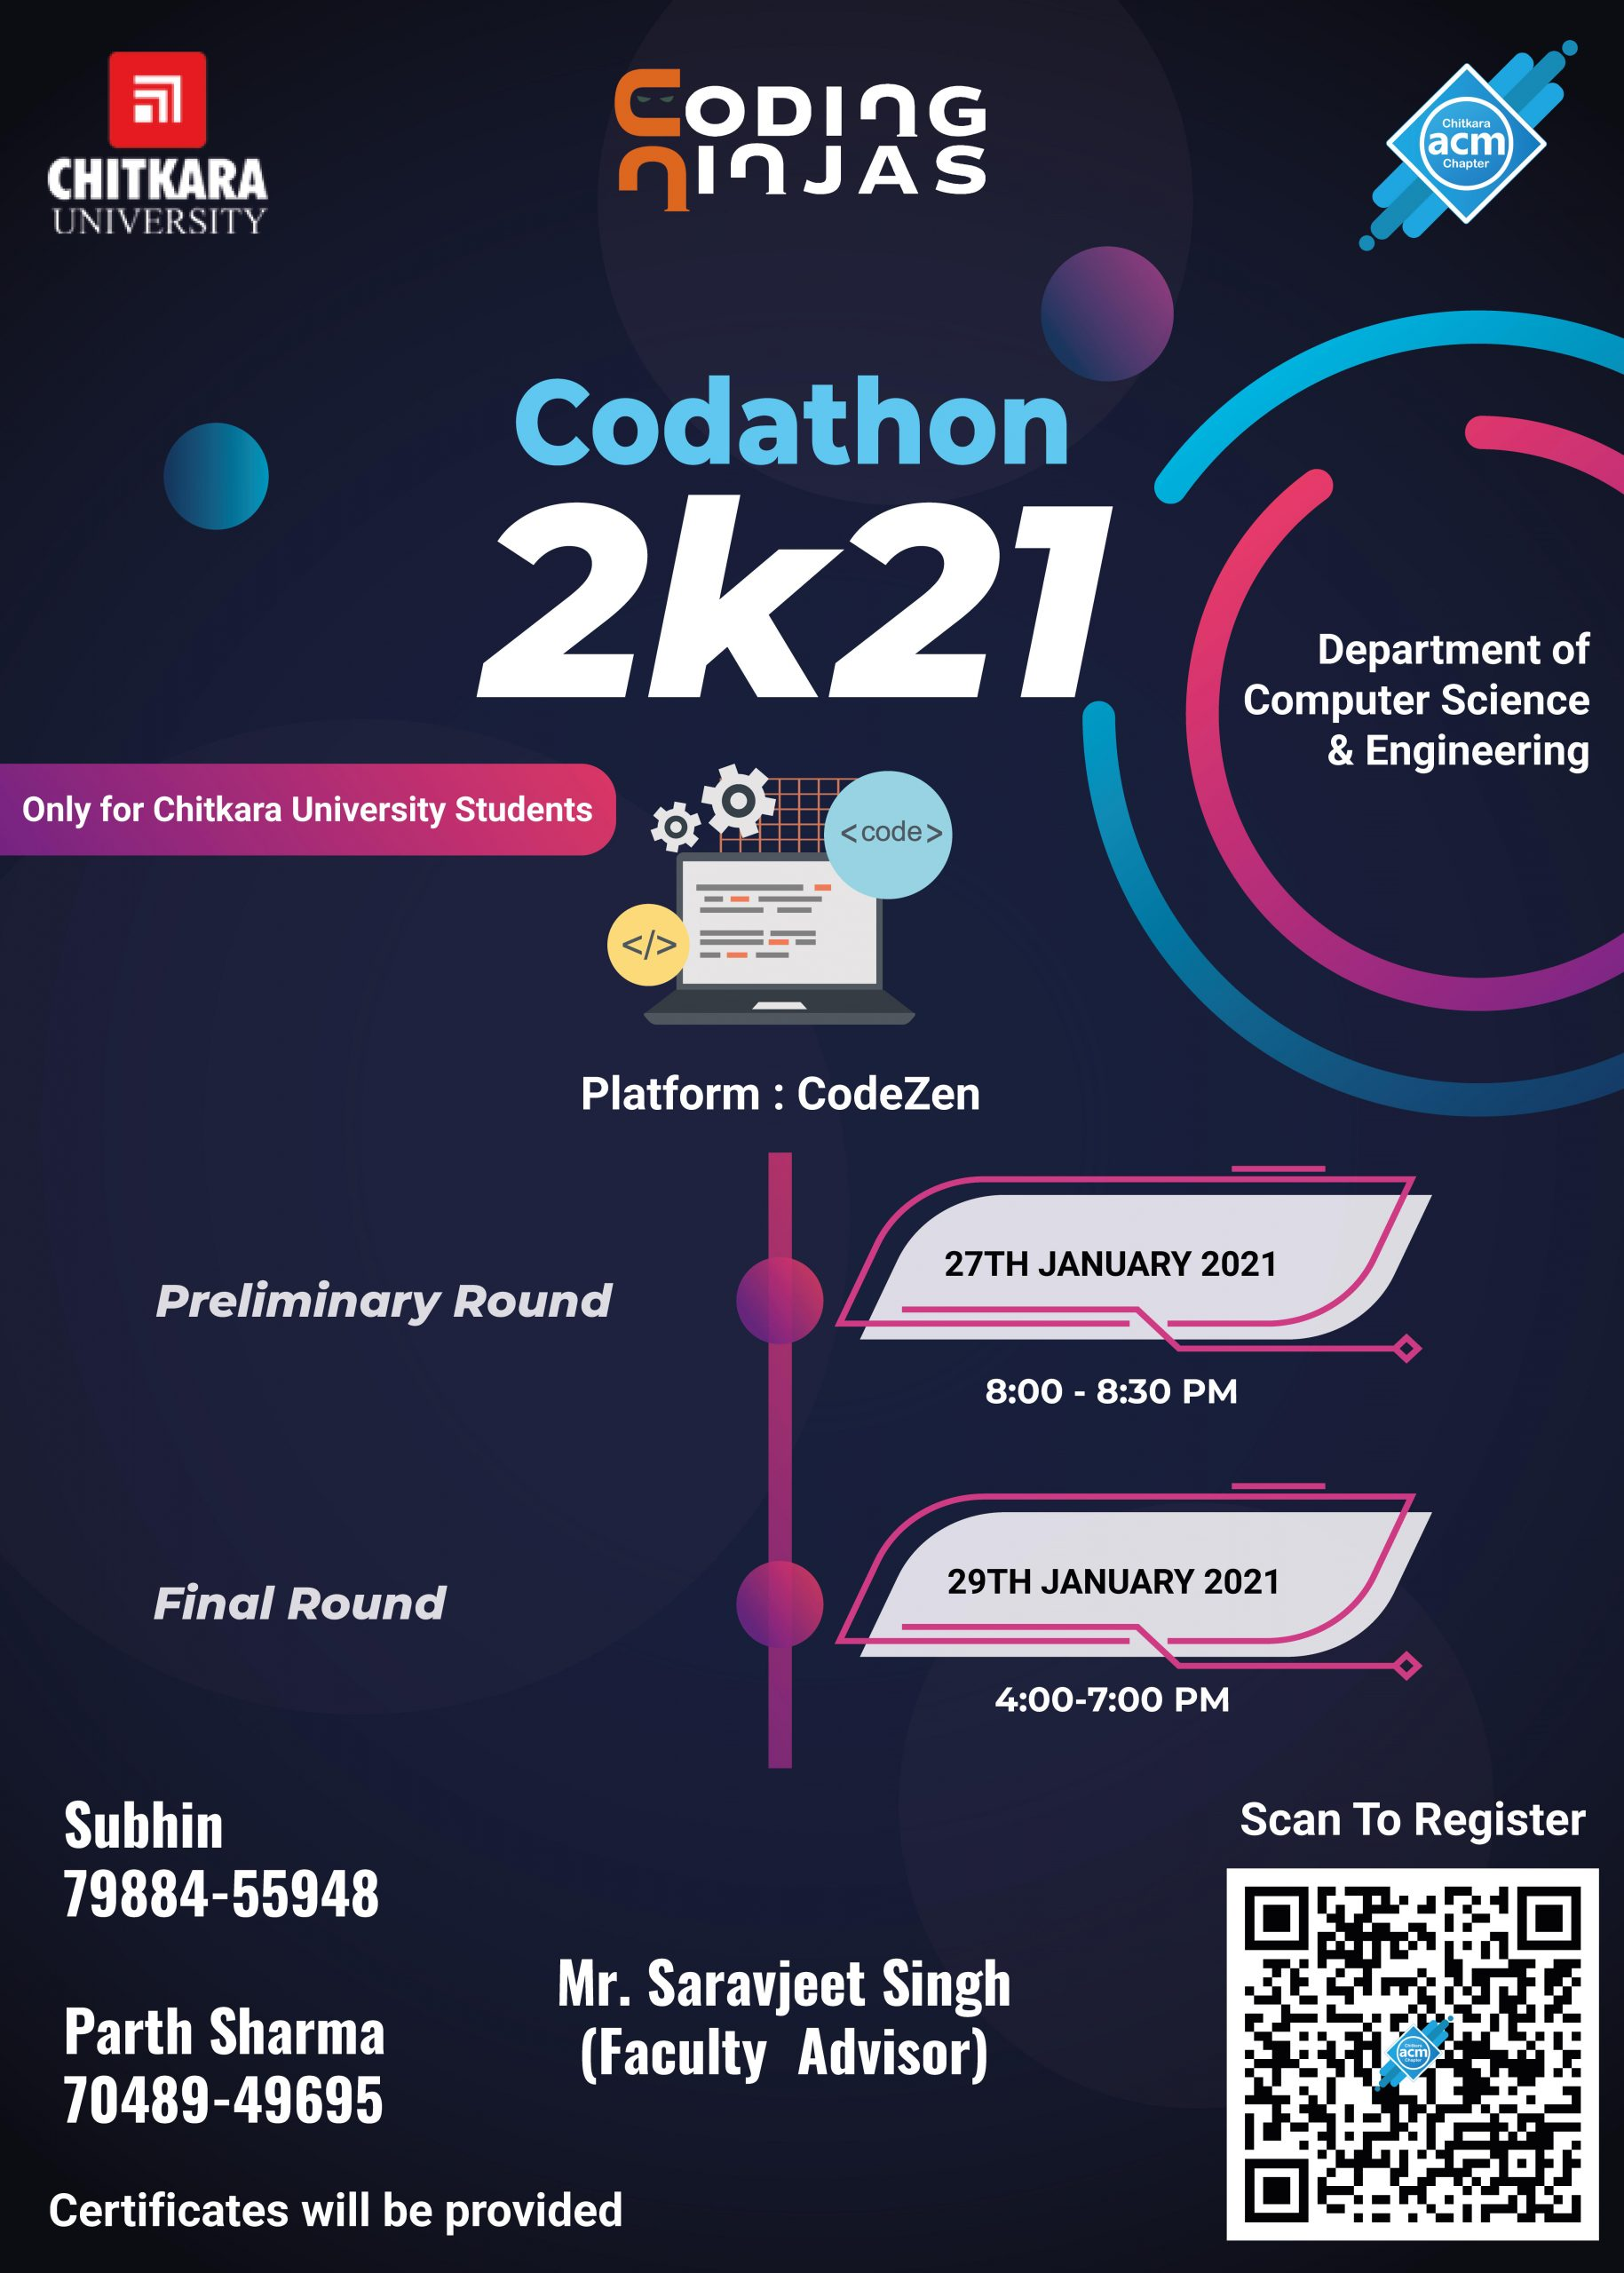 acm_event_codathon